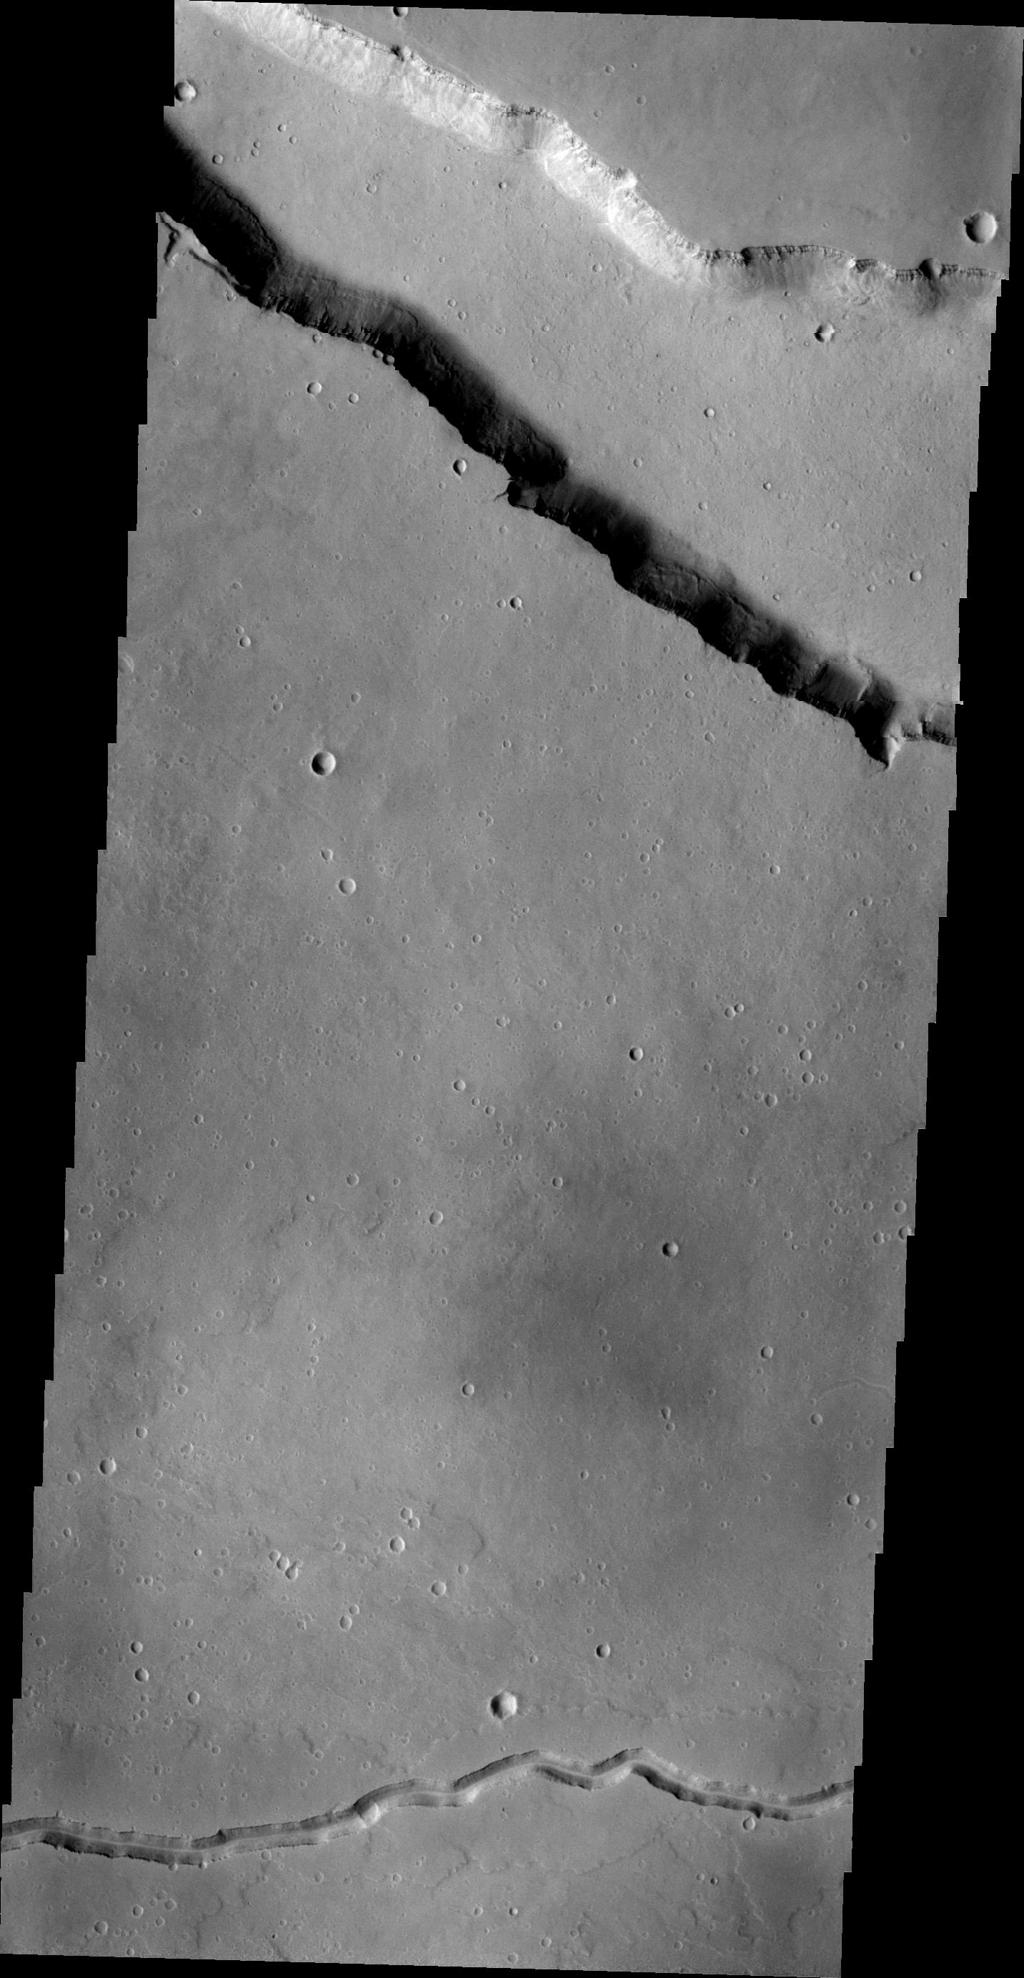 This NASA 2001 Mars Odyssey spacecraft image shows two different types of linear depressions. The wide depression at the top of the frame is Elysium Fossae, which most likely formed due to tectonic activity.